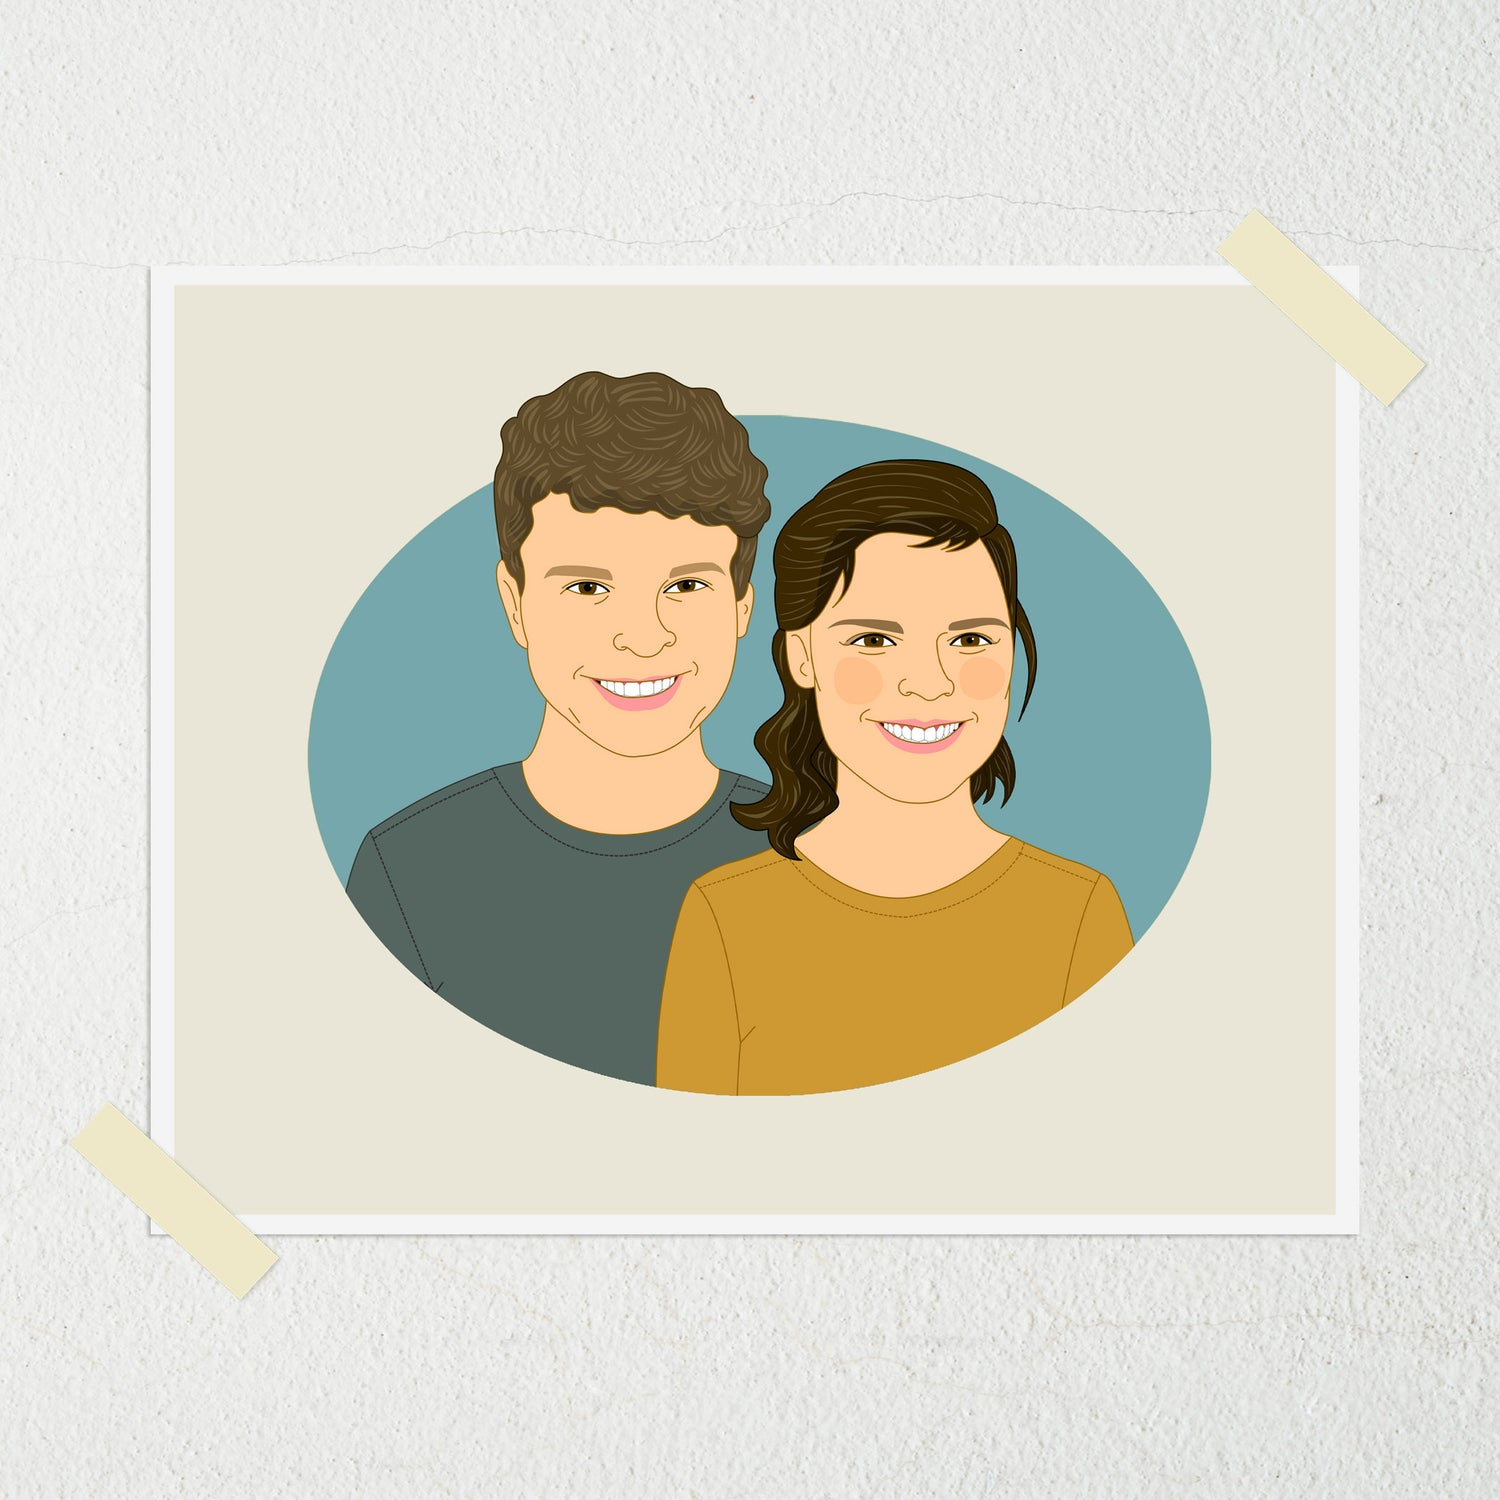 Image of Custom Couple Portrait from photo. Couple portraits, personalized illustration of 2 person.